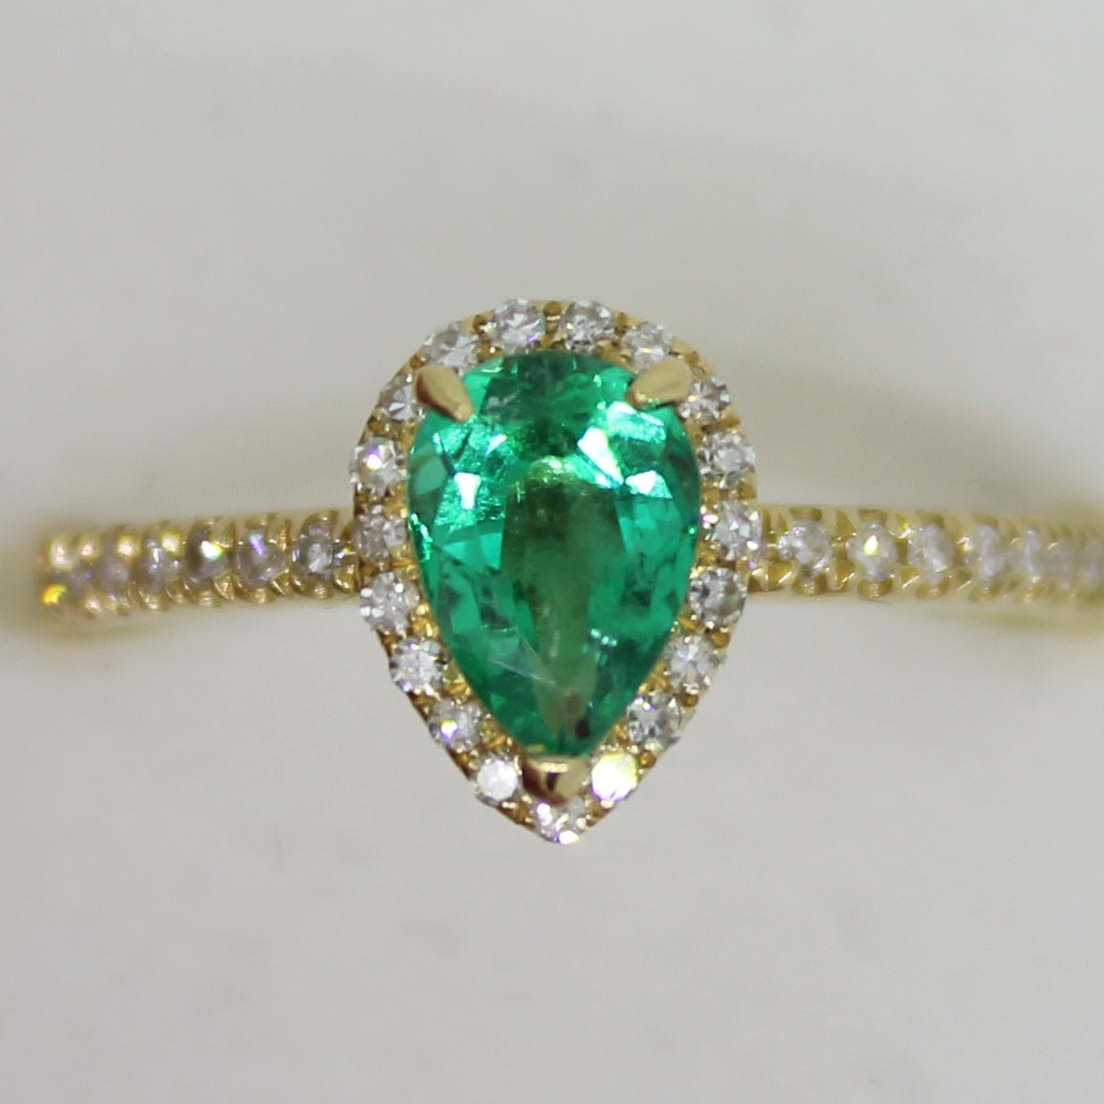 18ct Yellow Gold Colombian Emerald  35 Diamonds Ring. Emerald ring pear shape